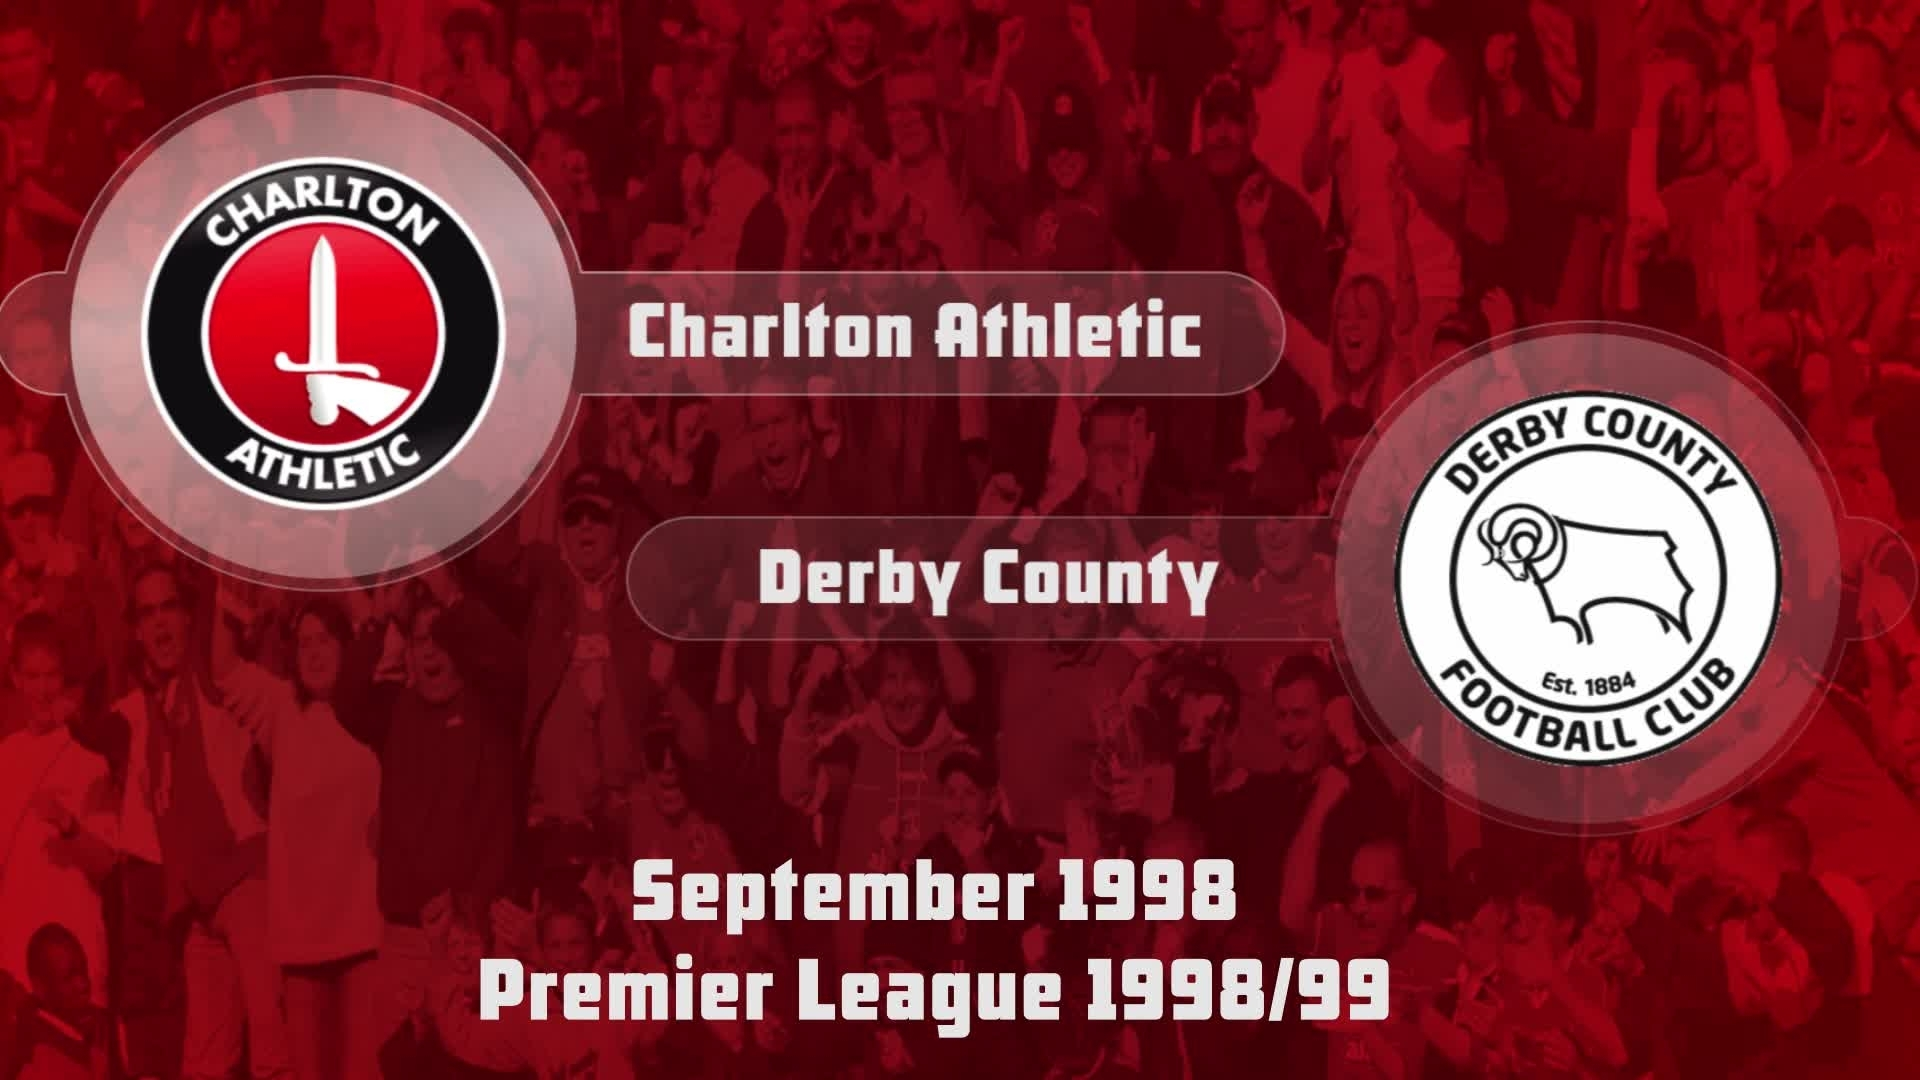 05 HIGHLIGHTS | Charlton 1 Derby County 2 (Sept 1998)